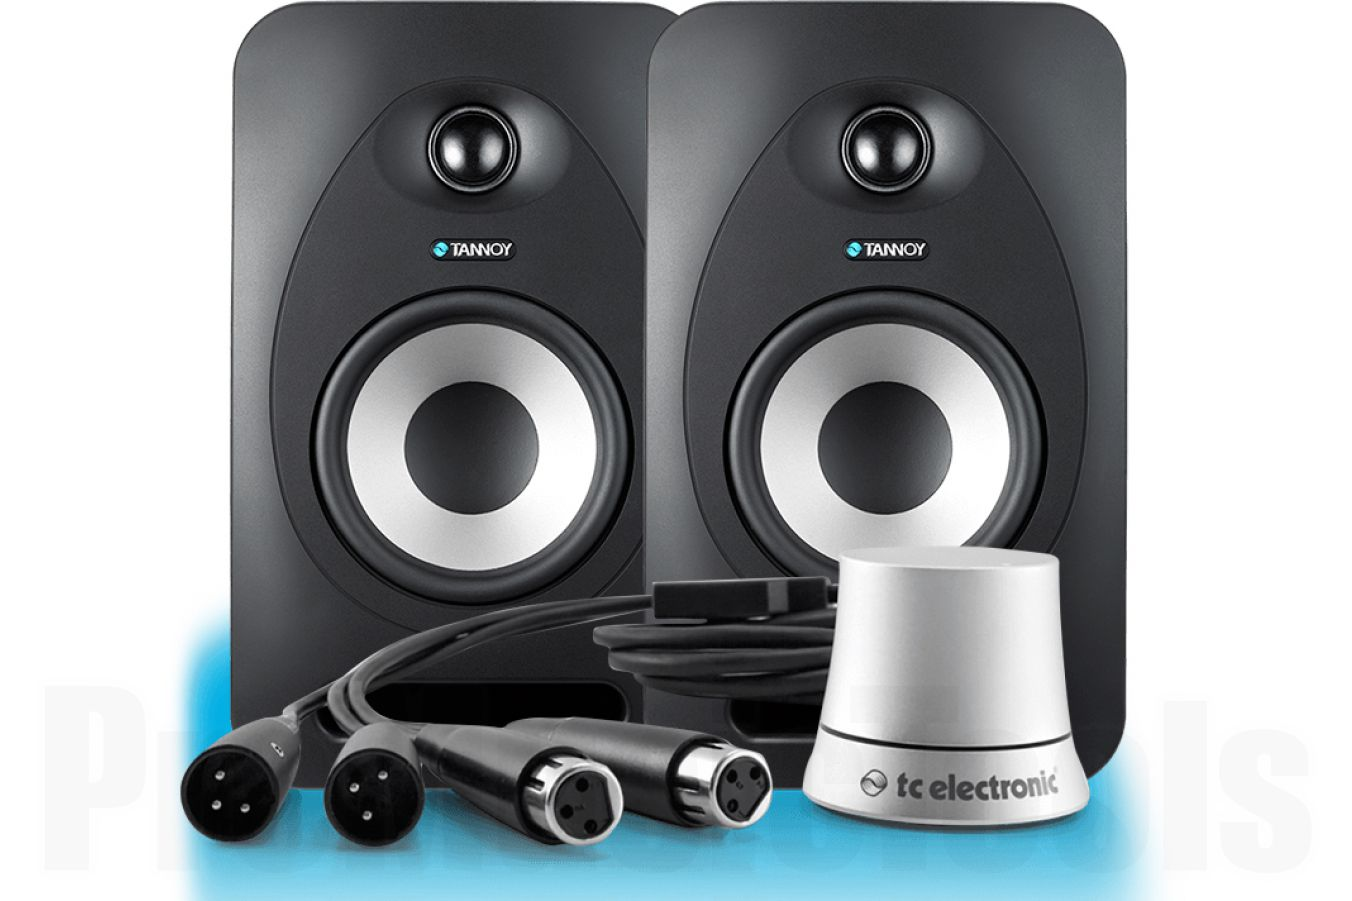 Tannoy Reveal 502 Active - PAIR BUNDLE SET incl. TC Electronic Level Pilot - b-stock (1x opened box)